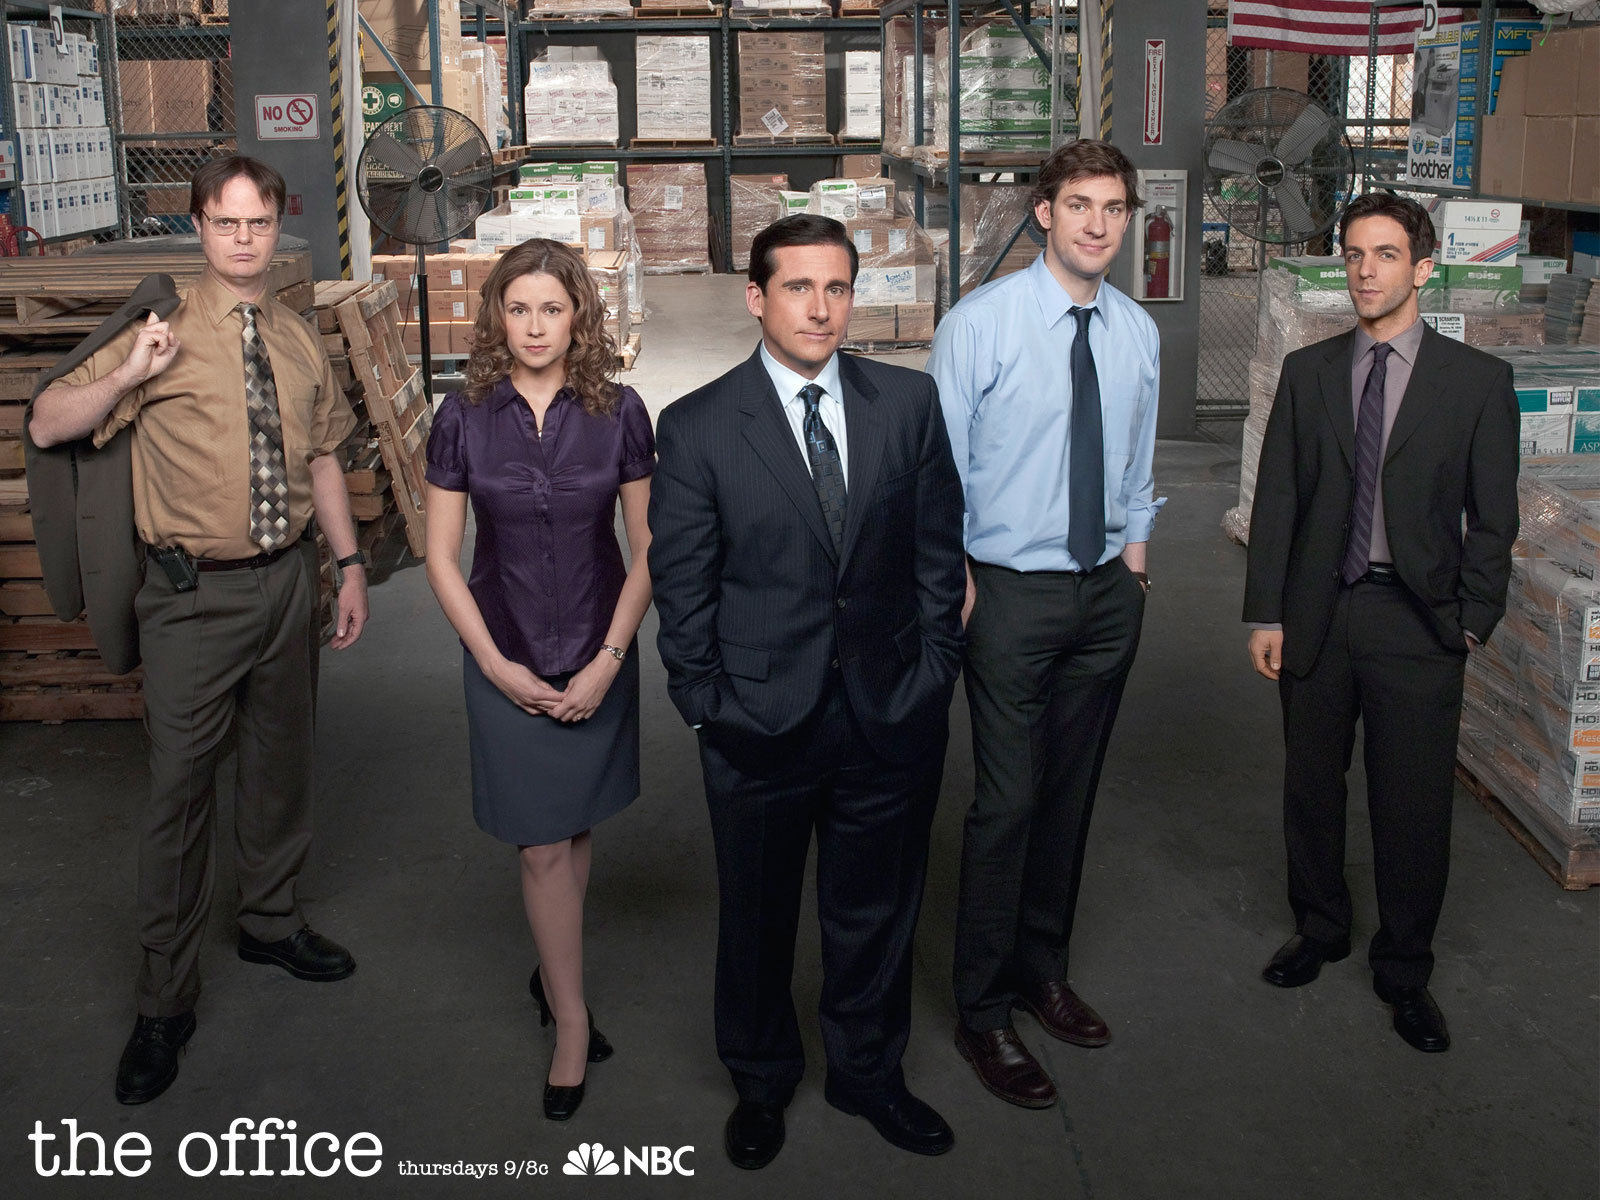 TV comedy series The Office.